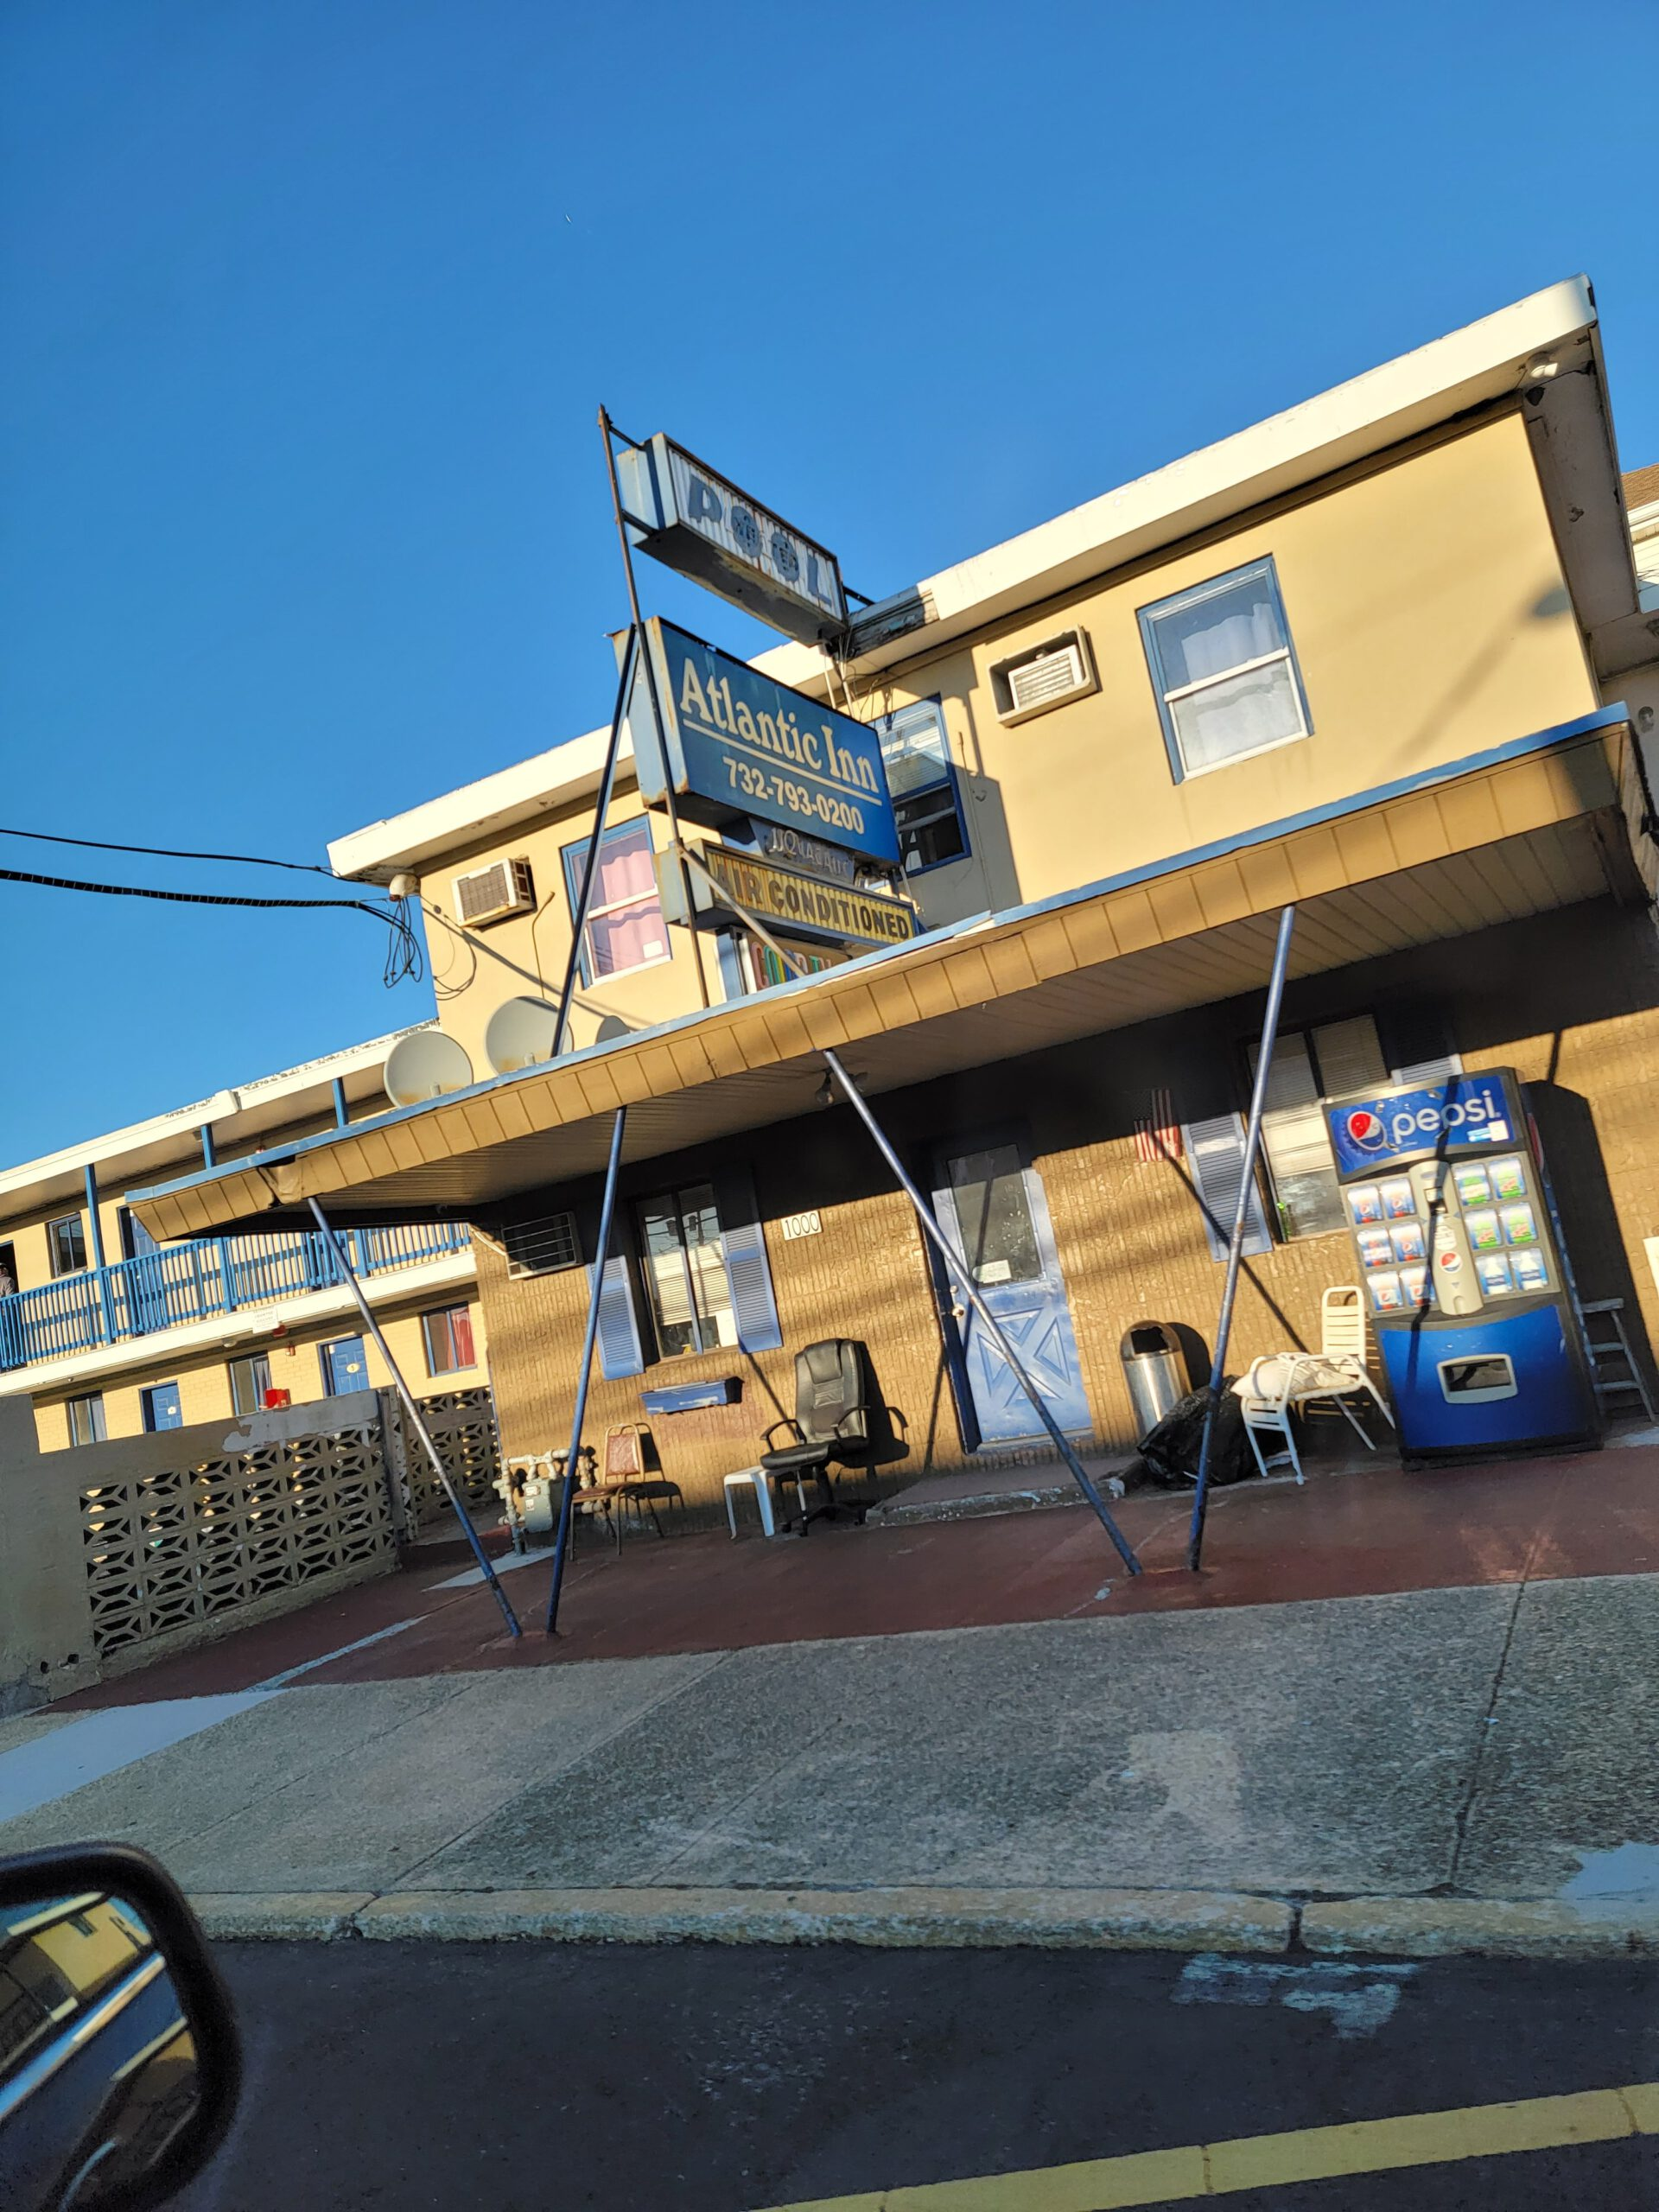 SEASIDE HEIGHTS: TROUBLE AT THE INN